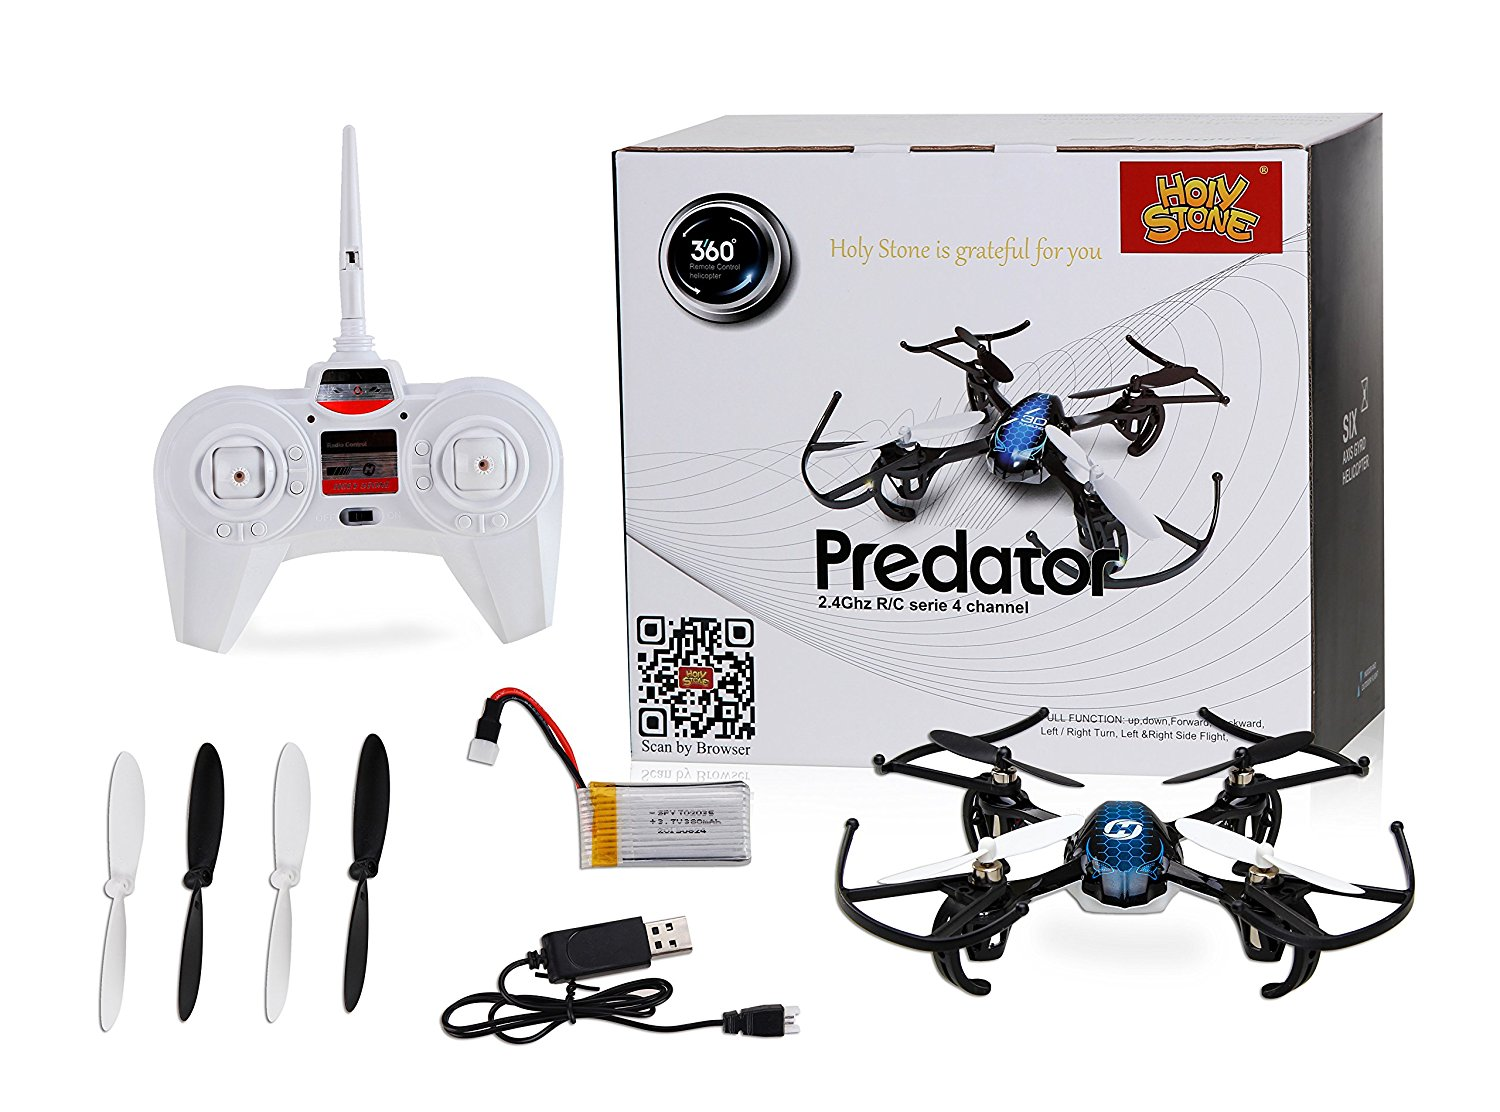 Holy Stone HS170 Predator Mini RC Helicopter Drone 24Ghz 6 Axis Gyro 4 Channels Quadcopter Good Choice For Training